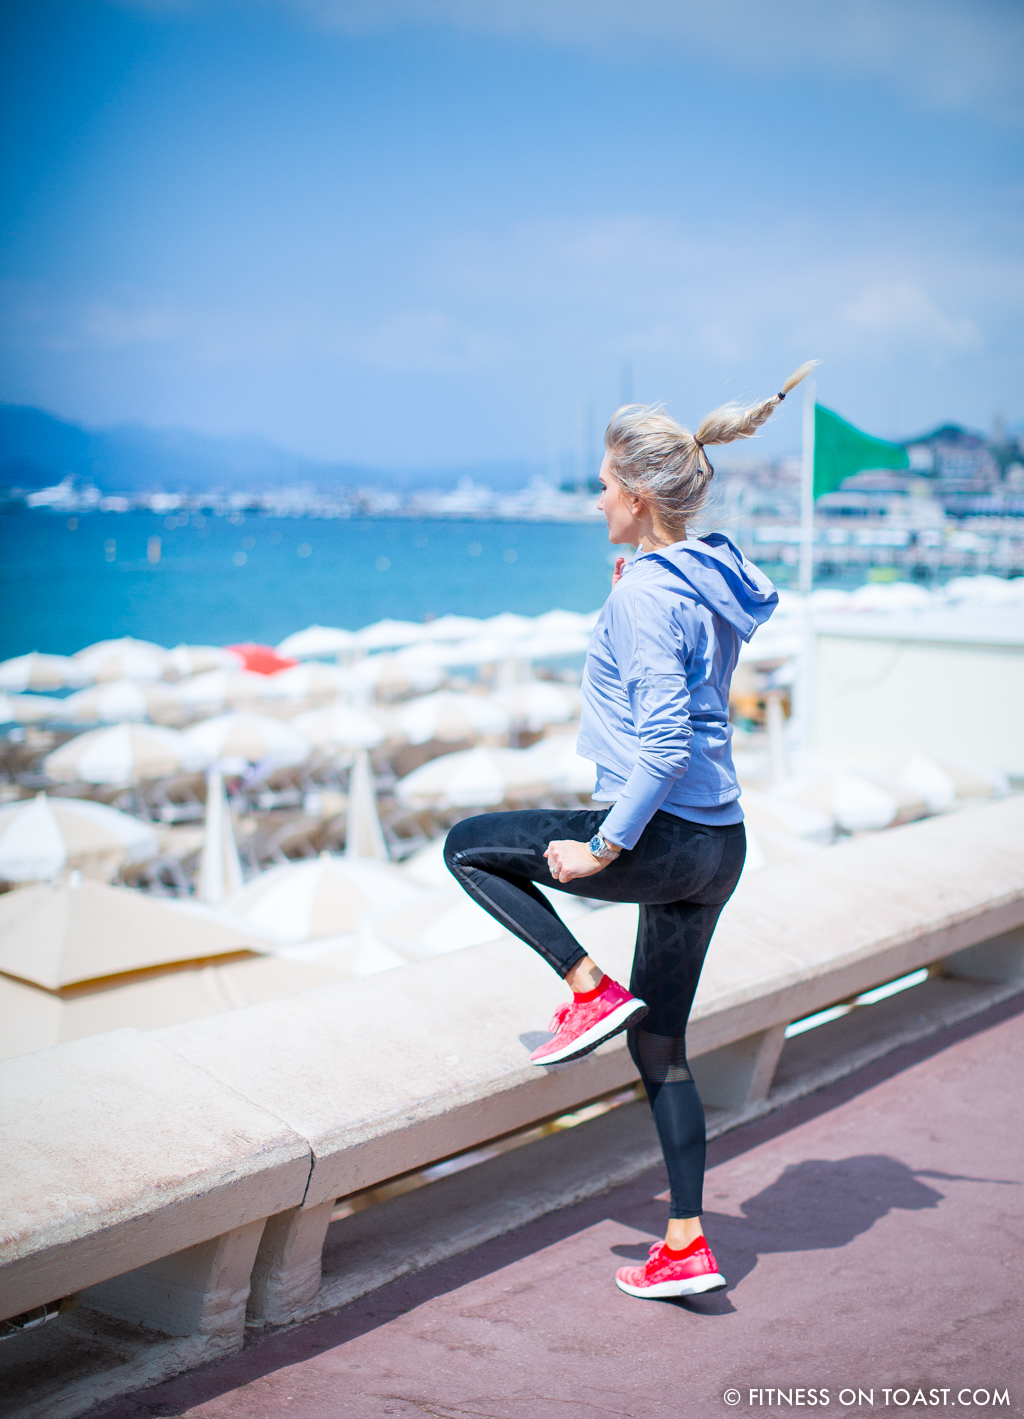 Fitness On Toast - Cannes Images